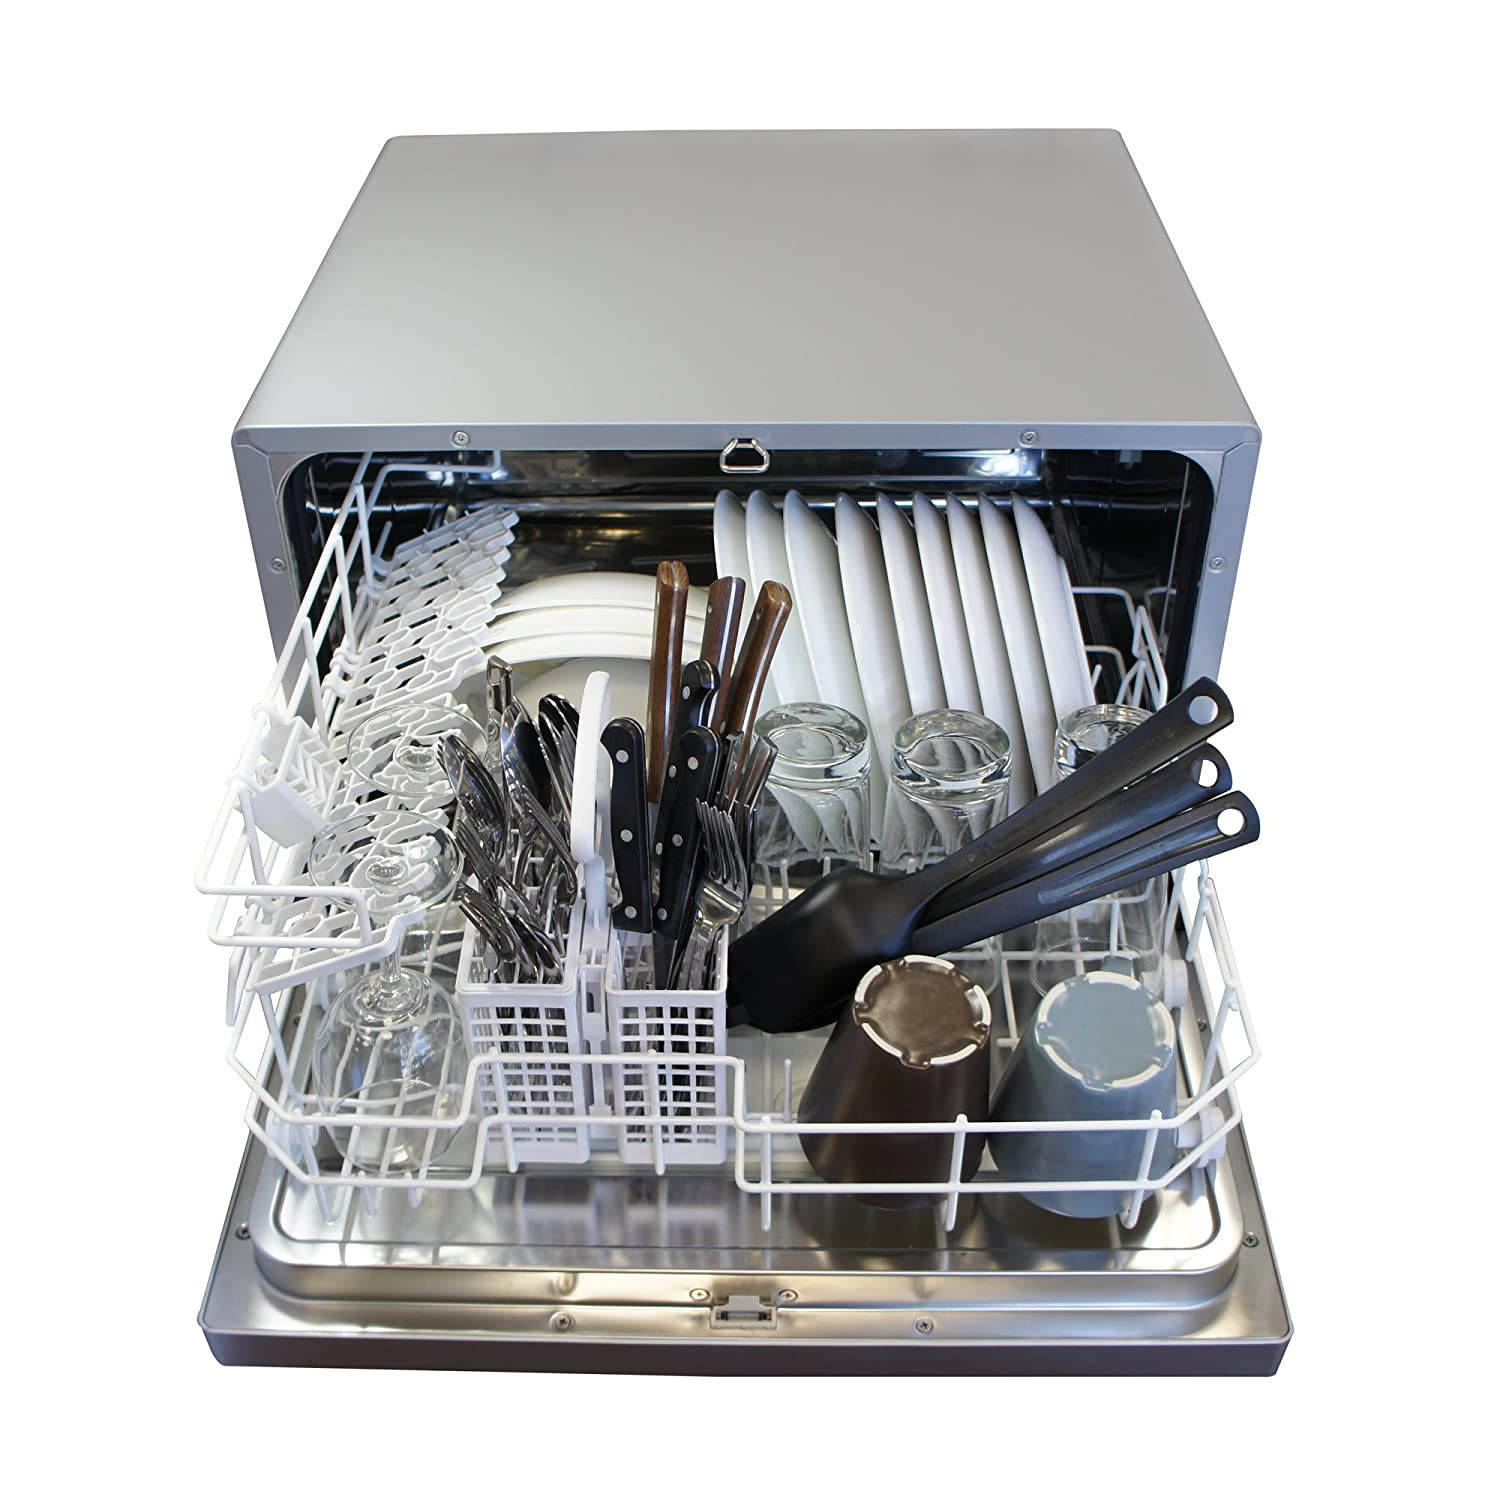 Amazon.com: SPT SD 2202S Countertop Dishwasher With Delay Start, Silver:  Appliances